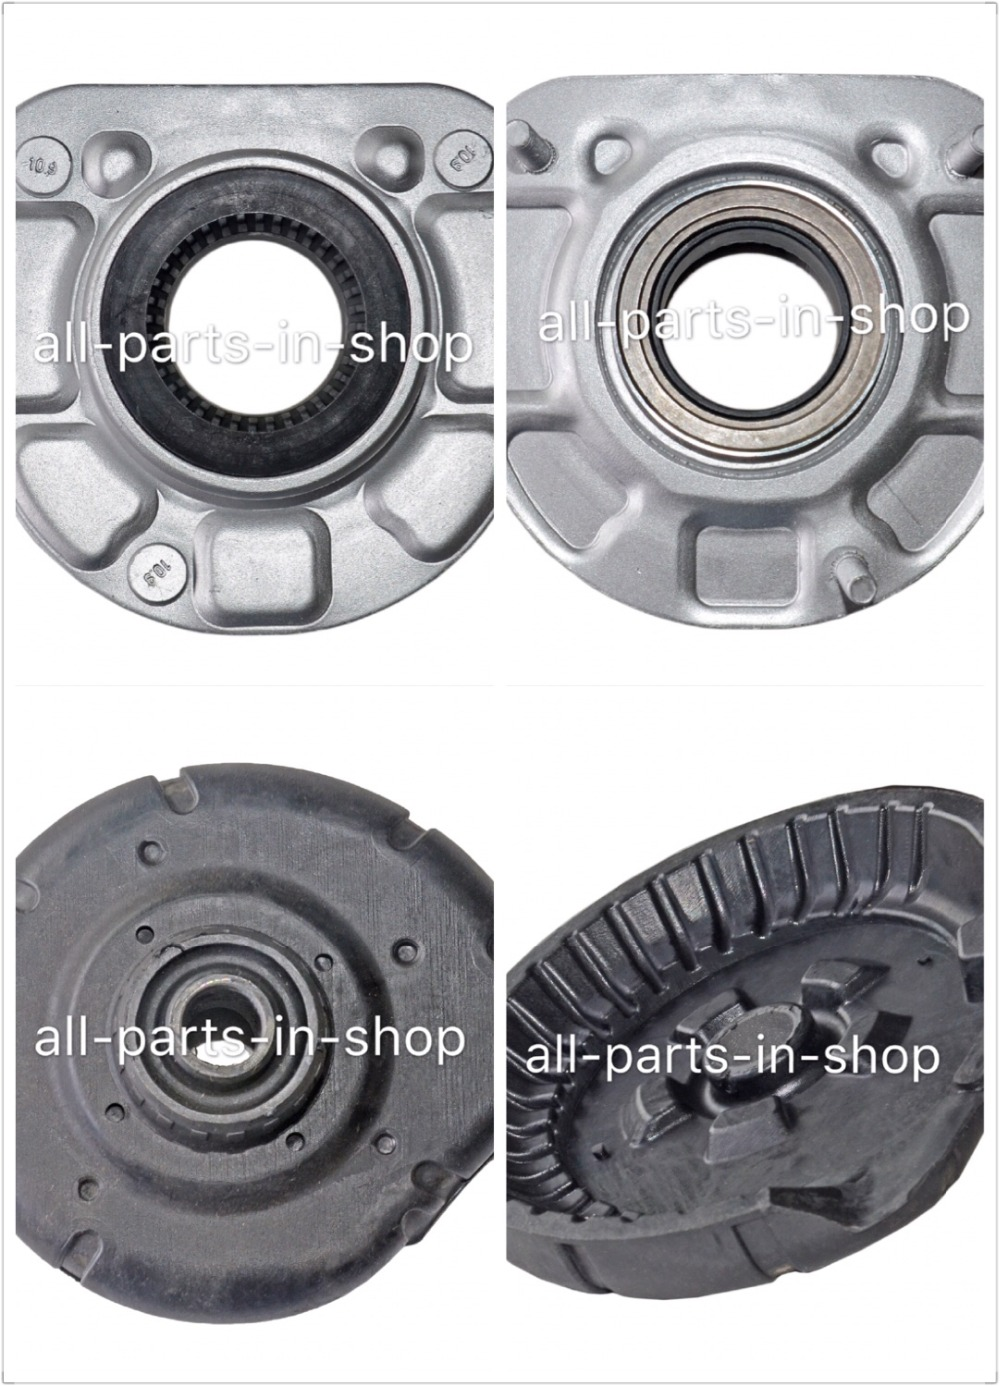 Strut support for volvo front strut mount and spring seat bushing s80 s60 v70 xc70 xc90